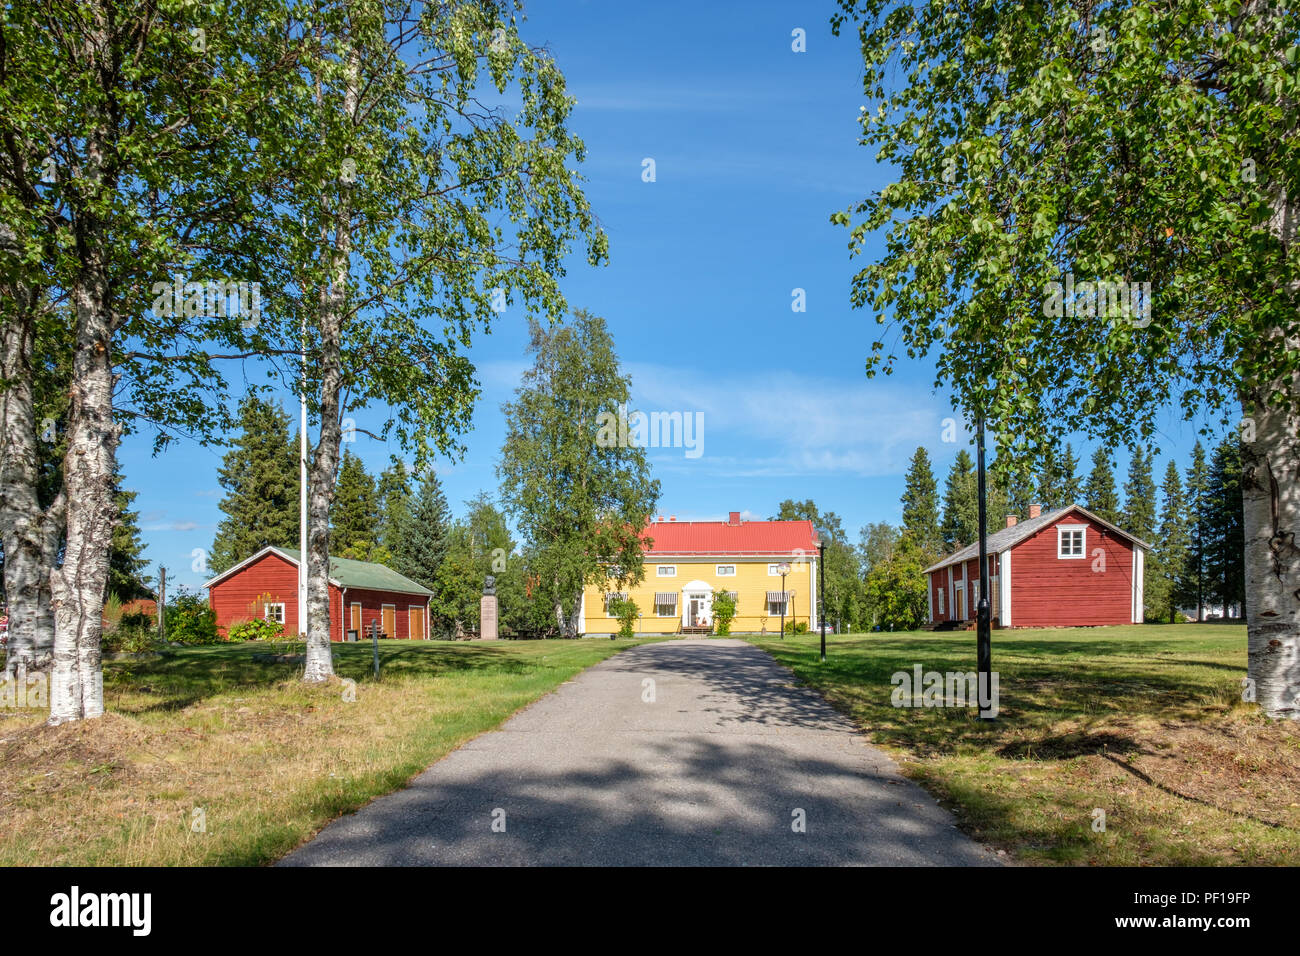 The manse in Pajala in northern Sweden. The red building to the right was built for legendary priest lars Levi Laestadius. - Stock Image